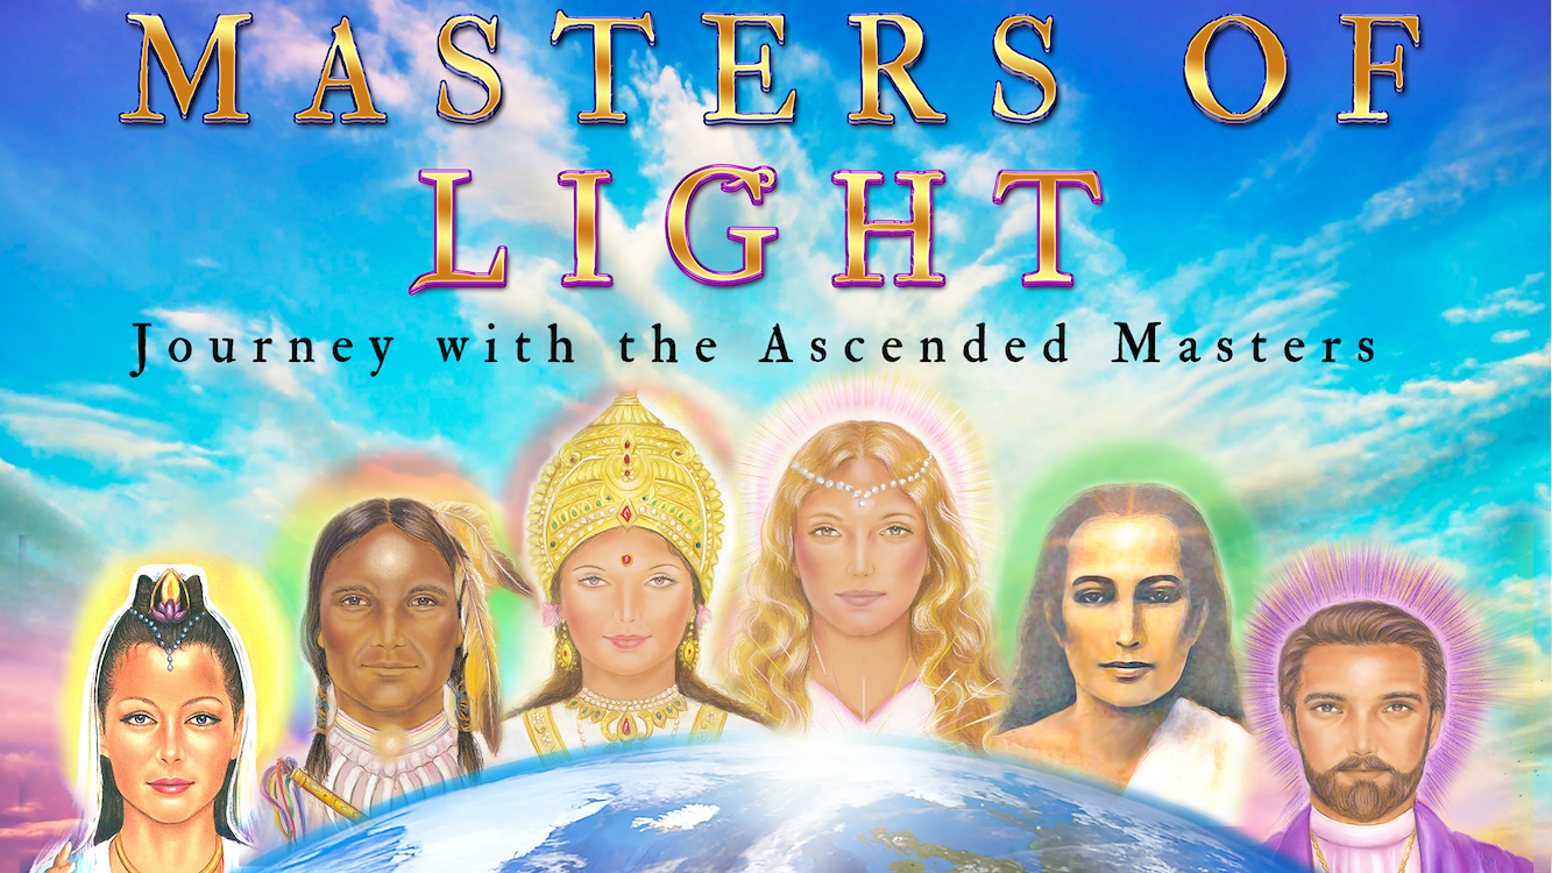 Come on a journey into Self-Mastery alongside the Ascended Masters of Earth.